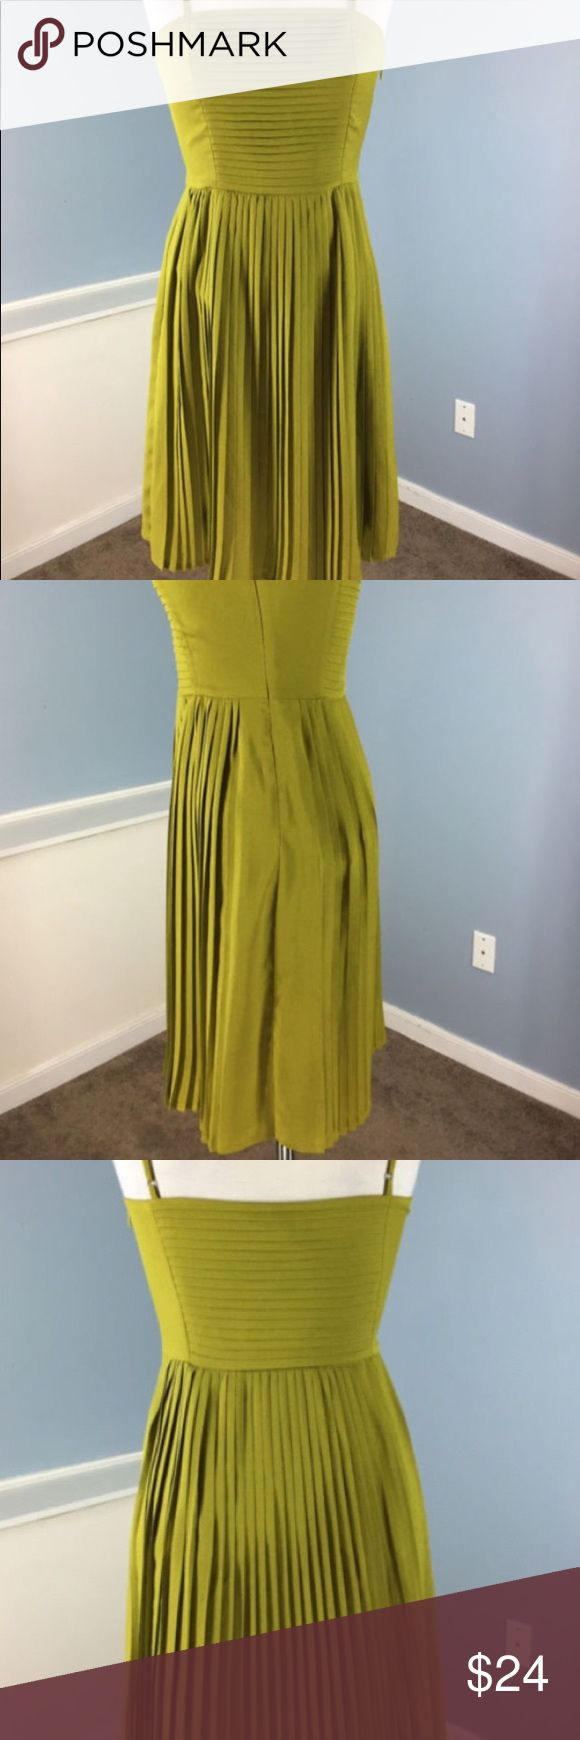 Lands End Parker Ballet Dress Bright Olive Sz 6 Beautiful spaghetti strap silk dress from  Lands' End Canvas in a sz 6. Bought at a sample sale - it is well made and a classic wardrobe piece. Never worn and in excellent condition. Lands' End Dresses